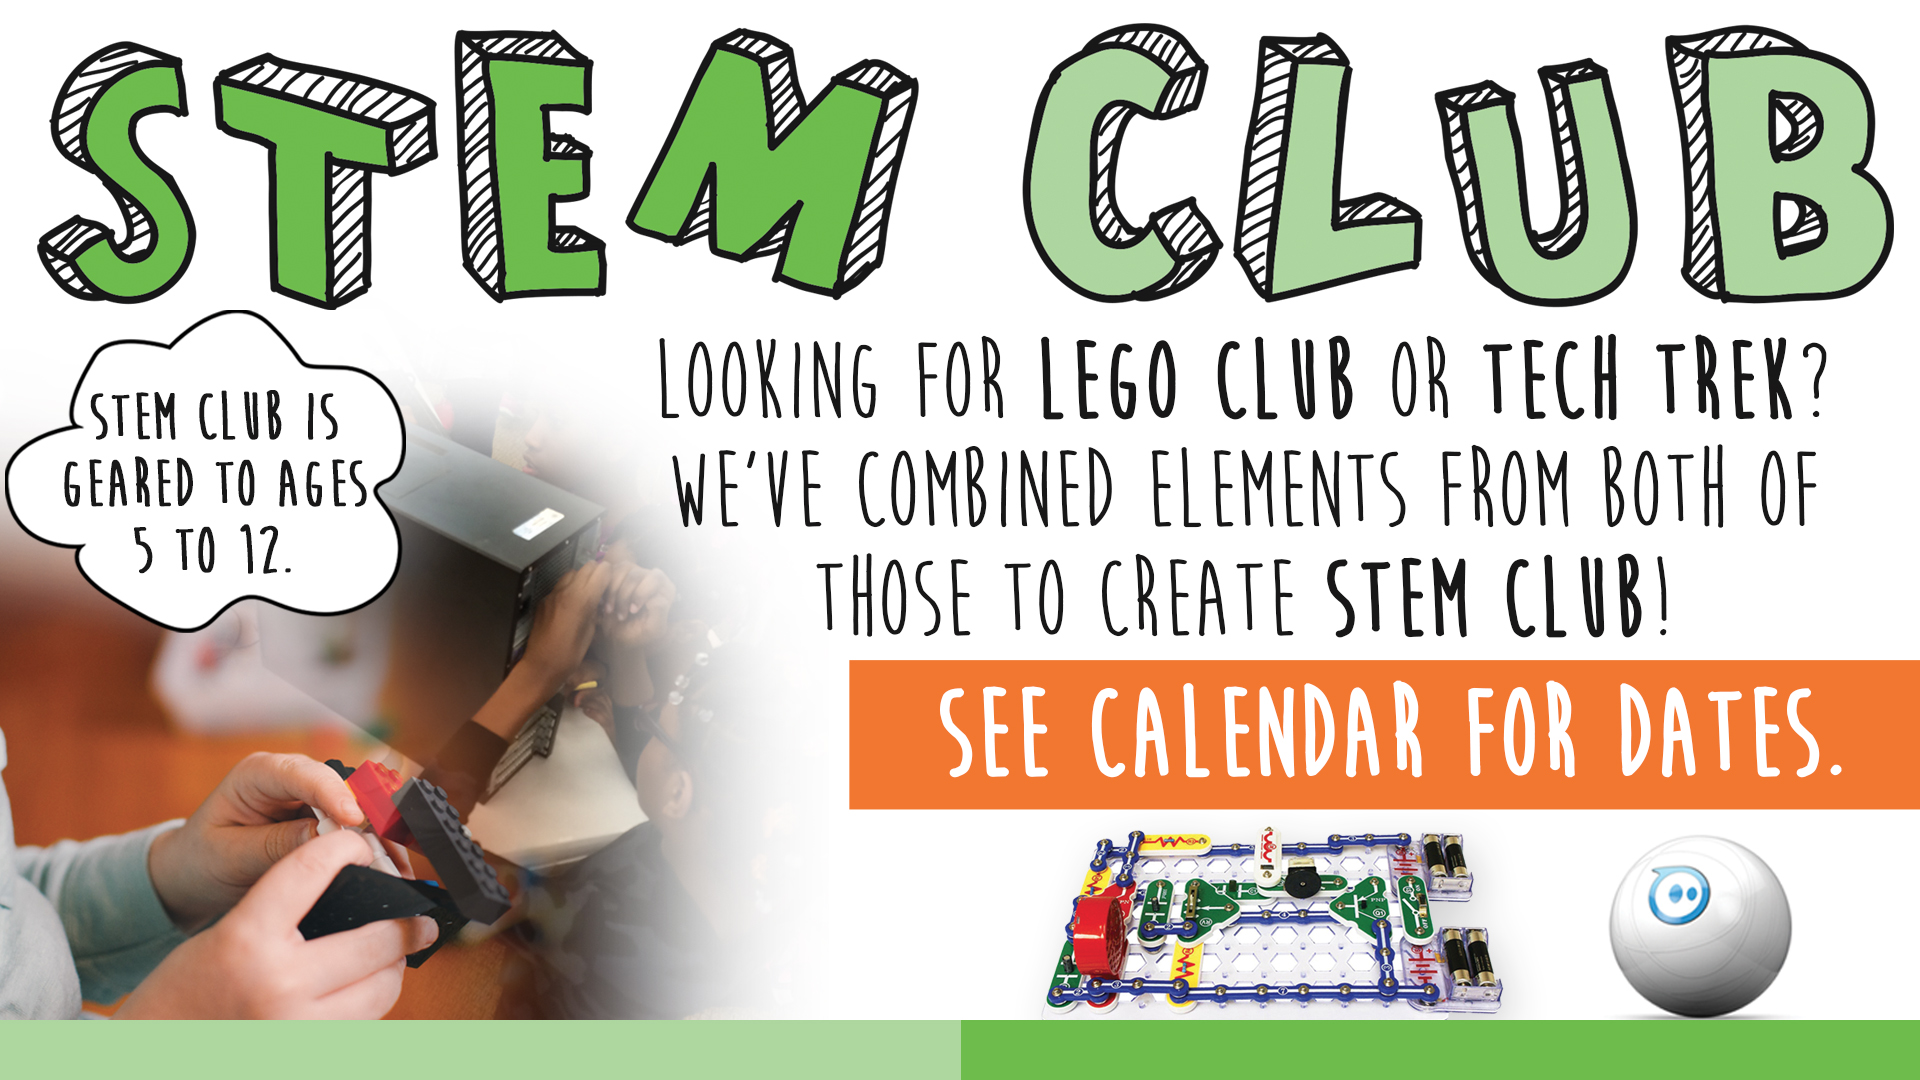 STEM Club:  LEGOs & More Building Free Play